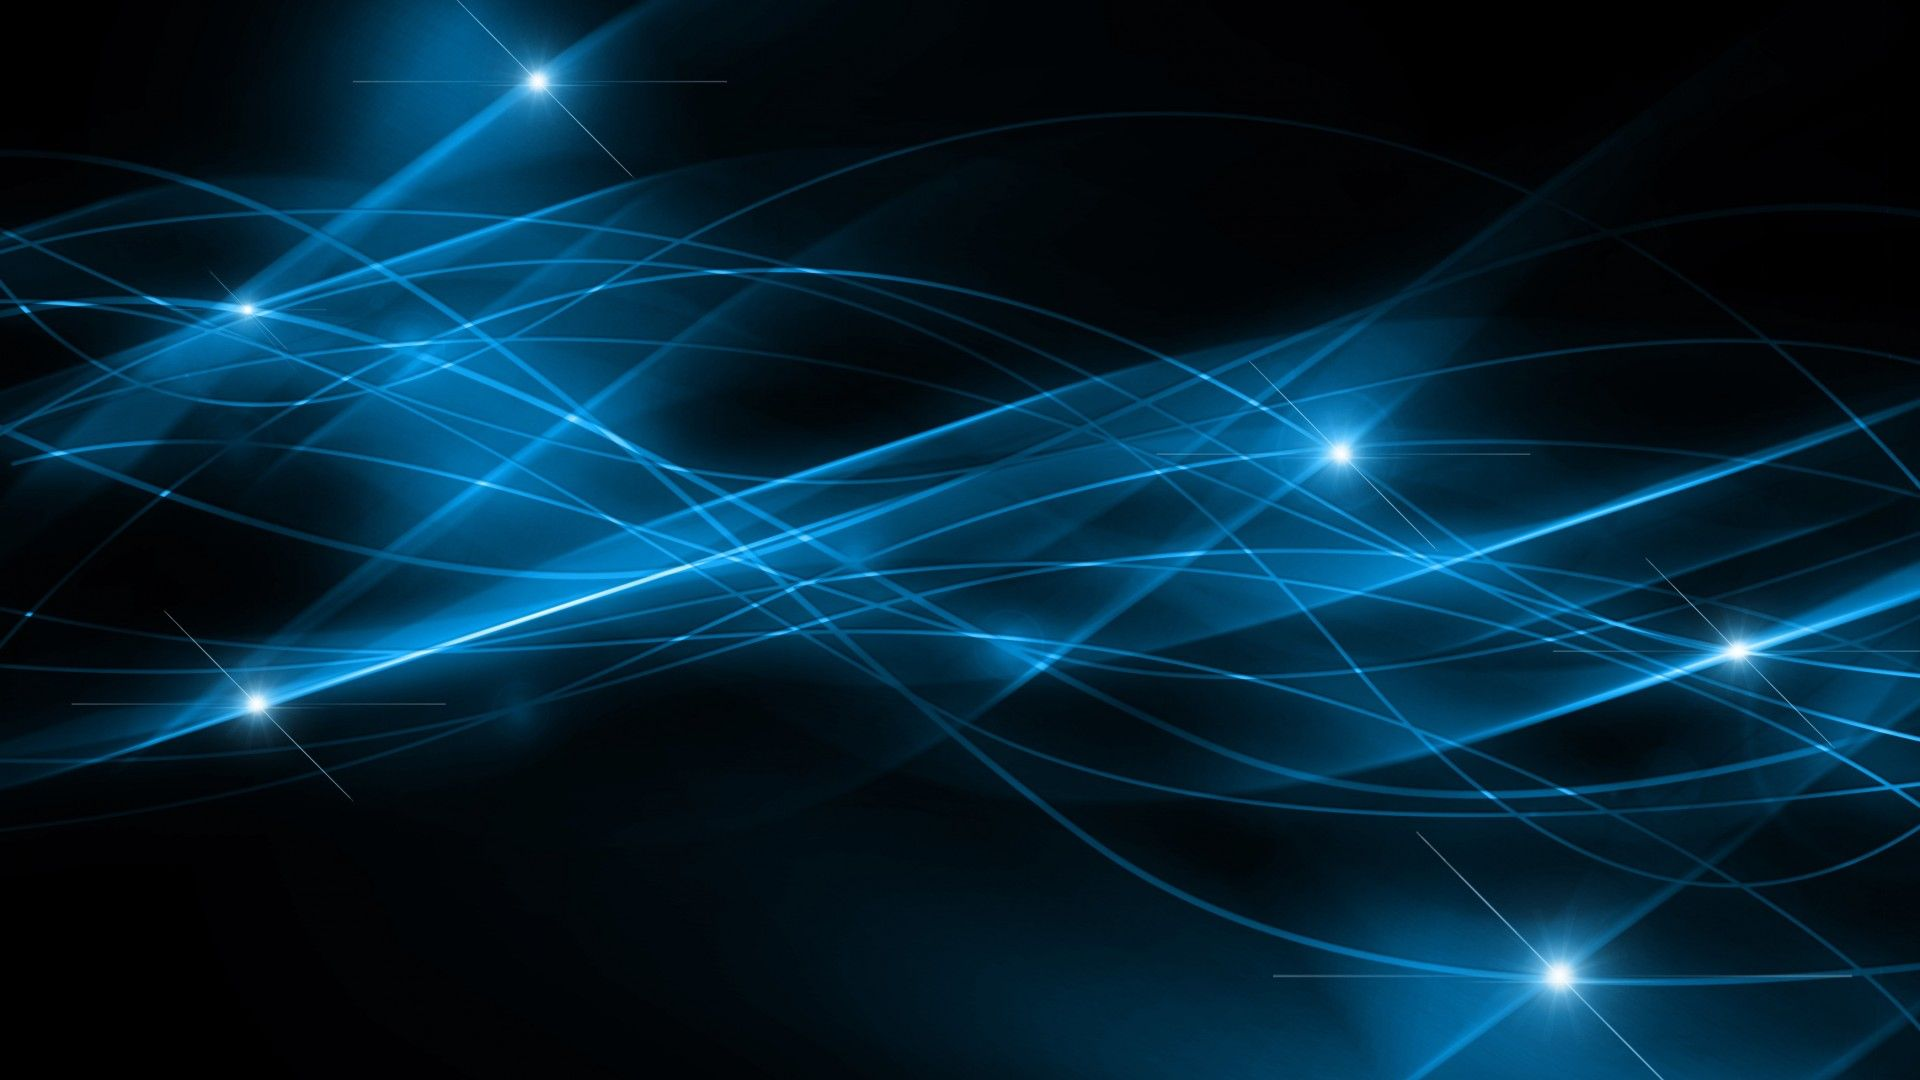 Black And Blue Backgrounds 1920x1080